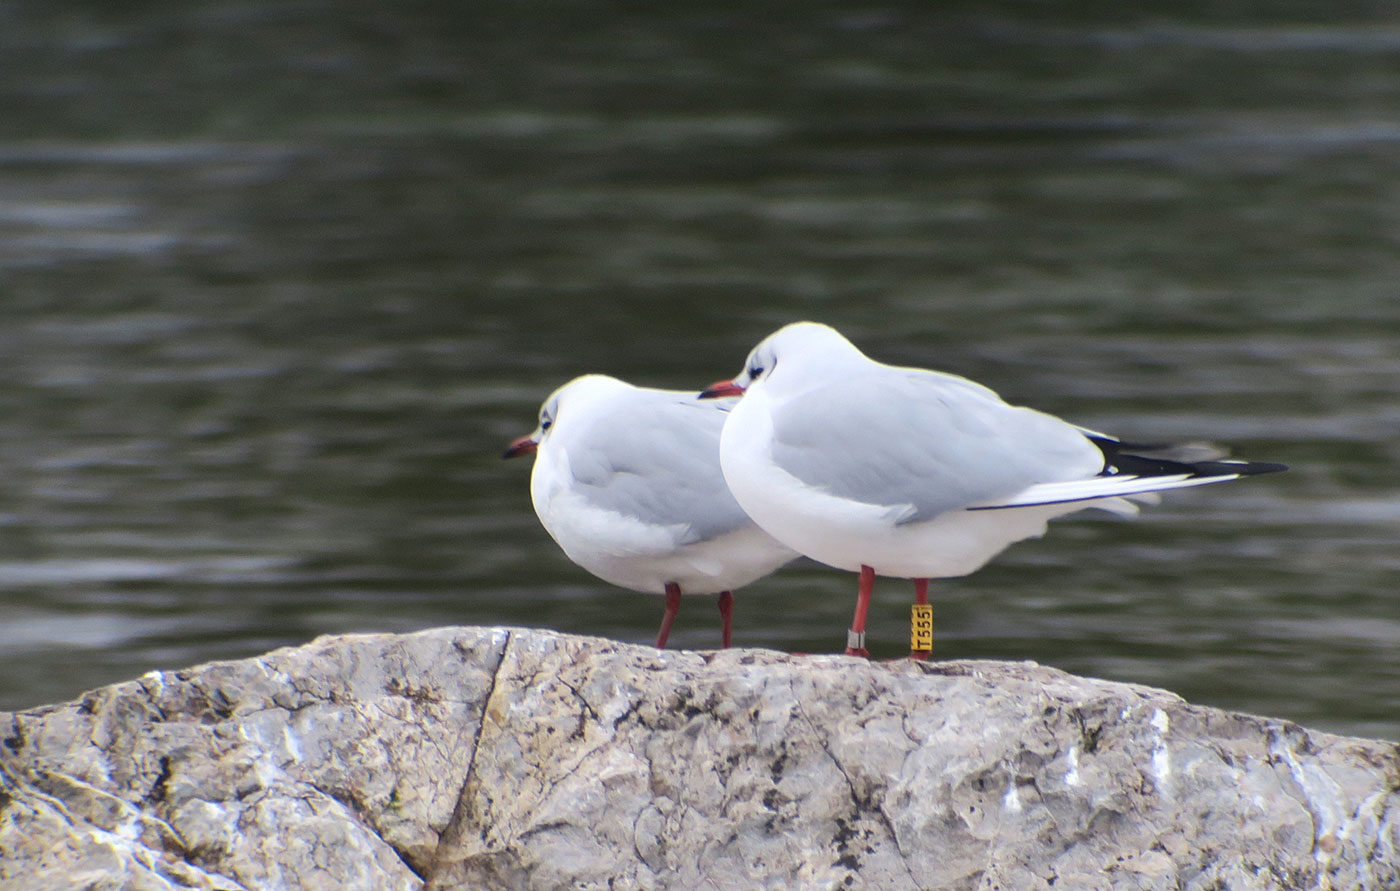 05_lachmoewe_black-headed-gull_muenchen_2019-01-12_6318